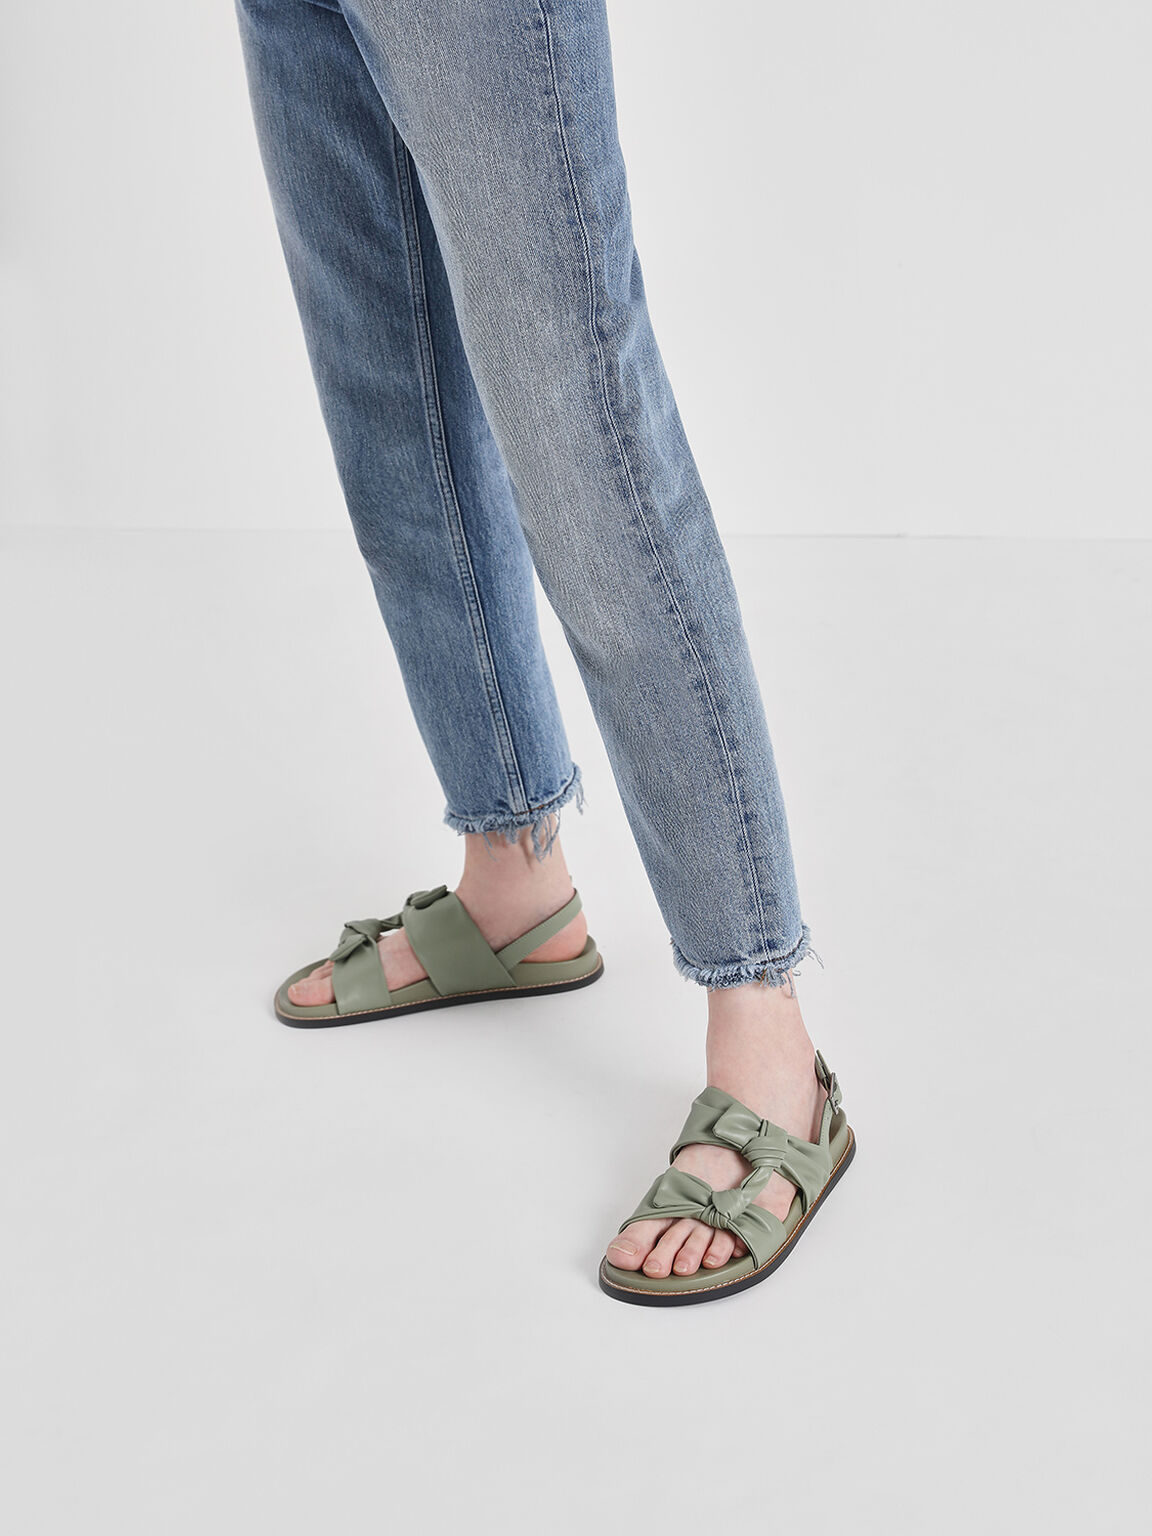 Double Knotted Slingback Sandals, Sage Green, hi-res